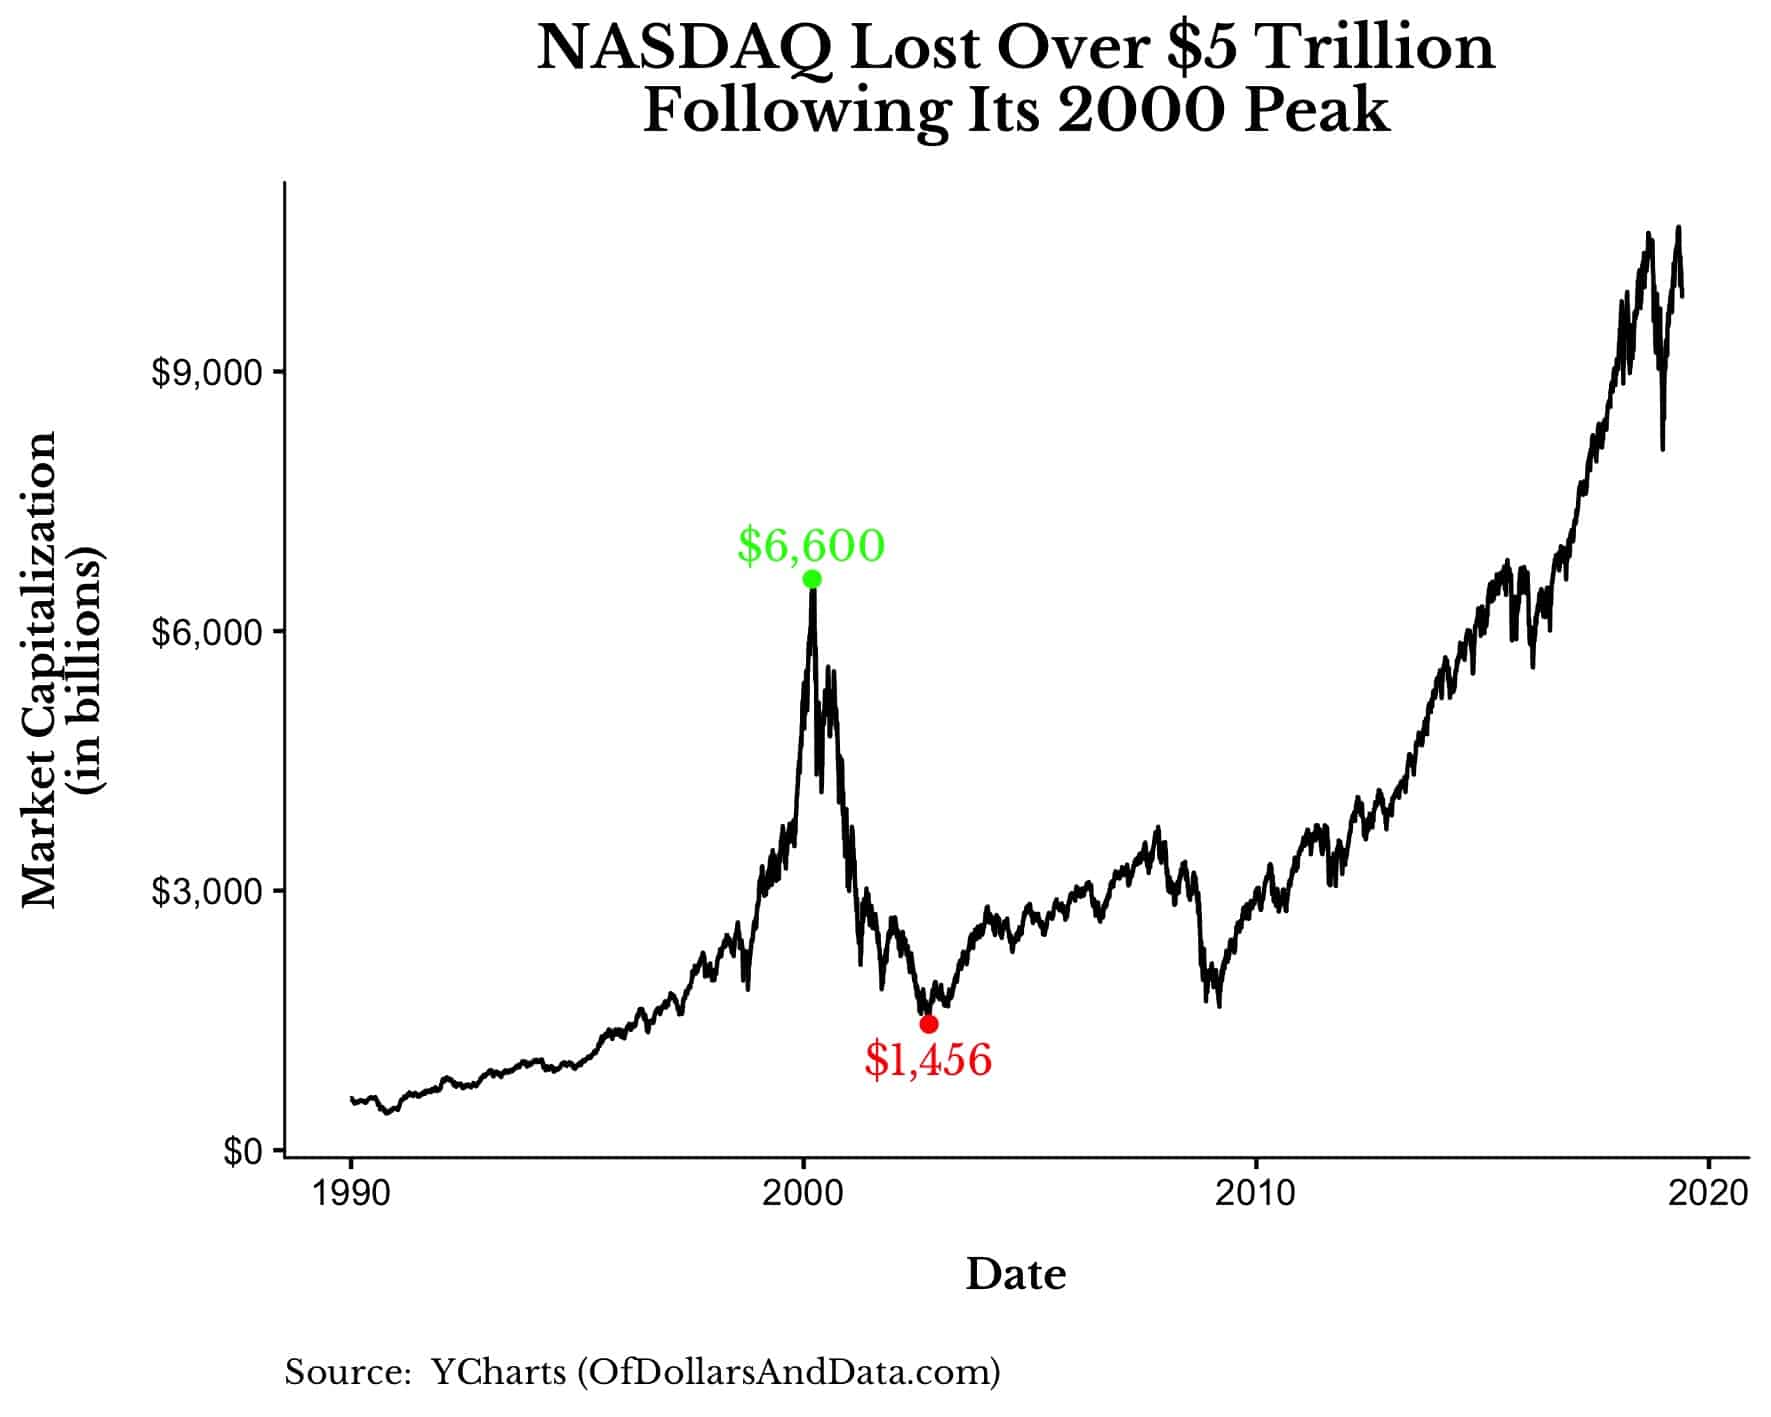 chart of the NASDAQ market capitalization from 1990 to 2019